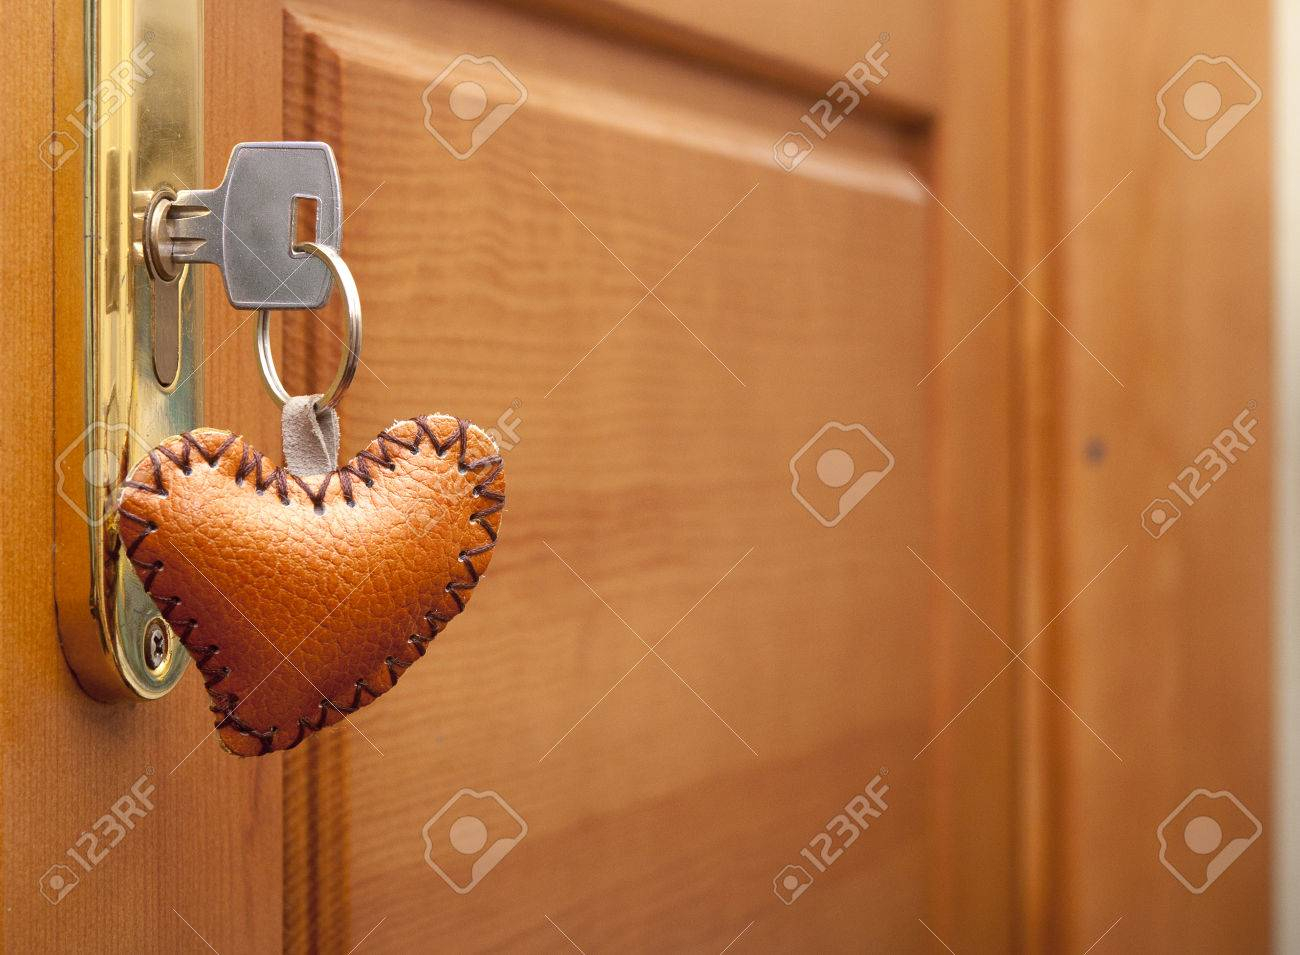 Wooden Door Lock With A Heart Shaped Key Ring With Regard To Most Current Heart Shaped Padlock Rings (View 25 of 25)